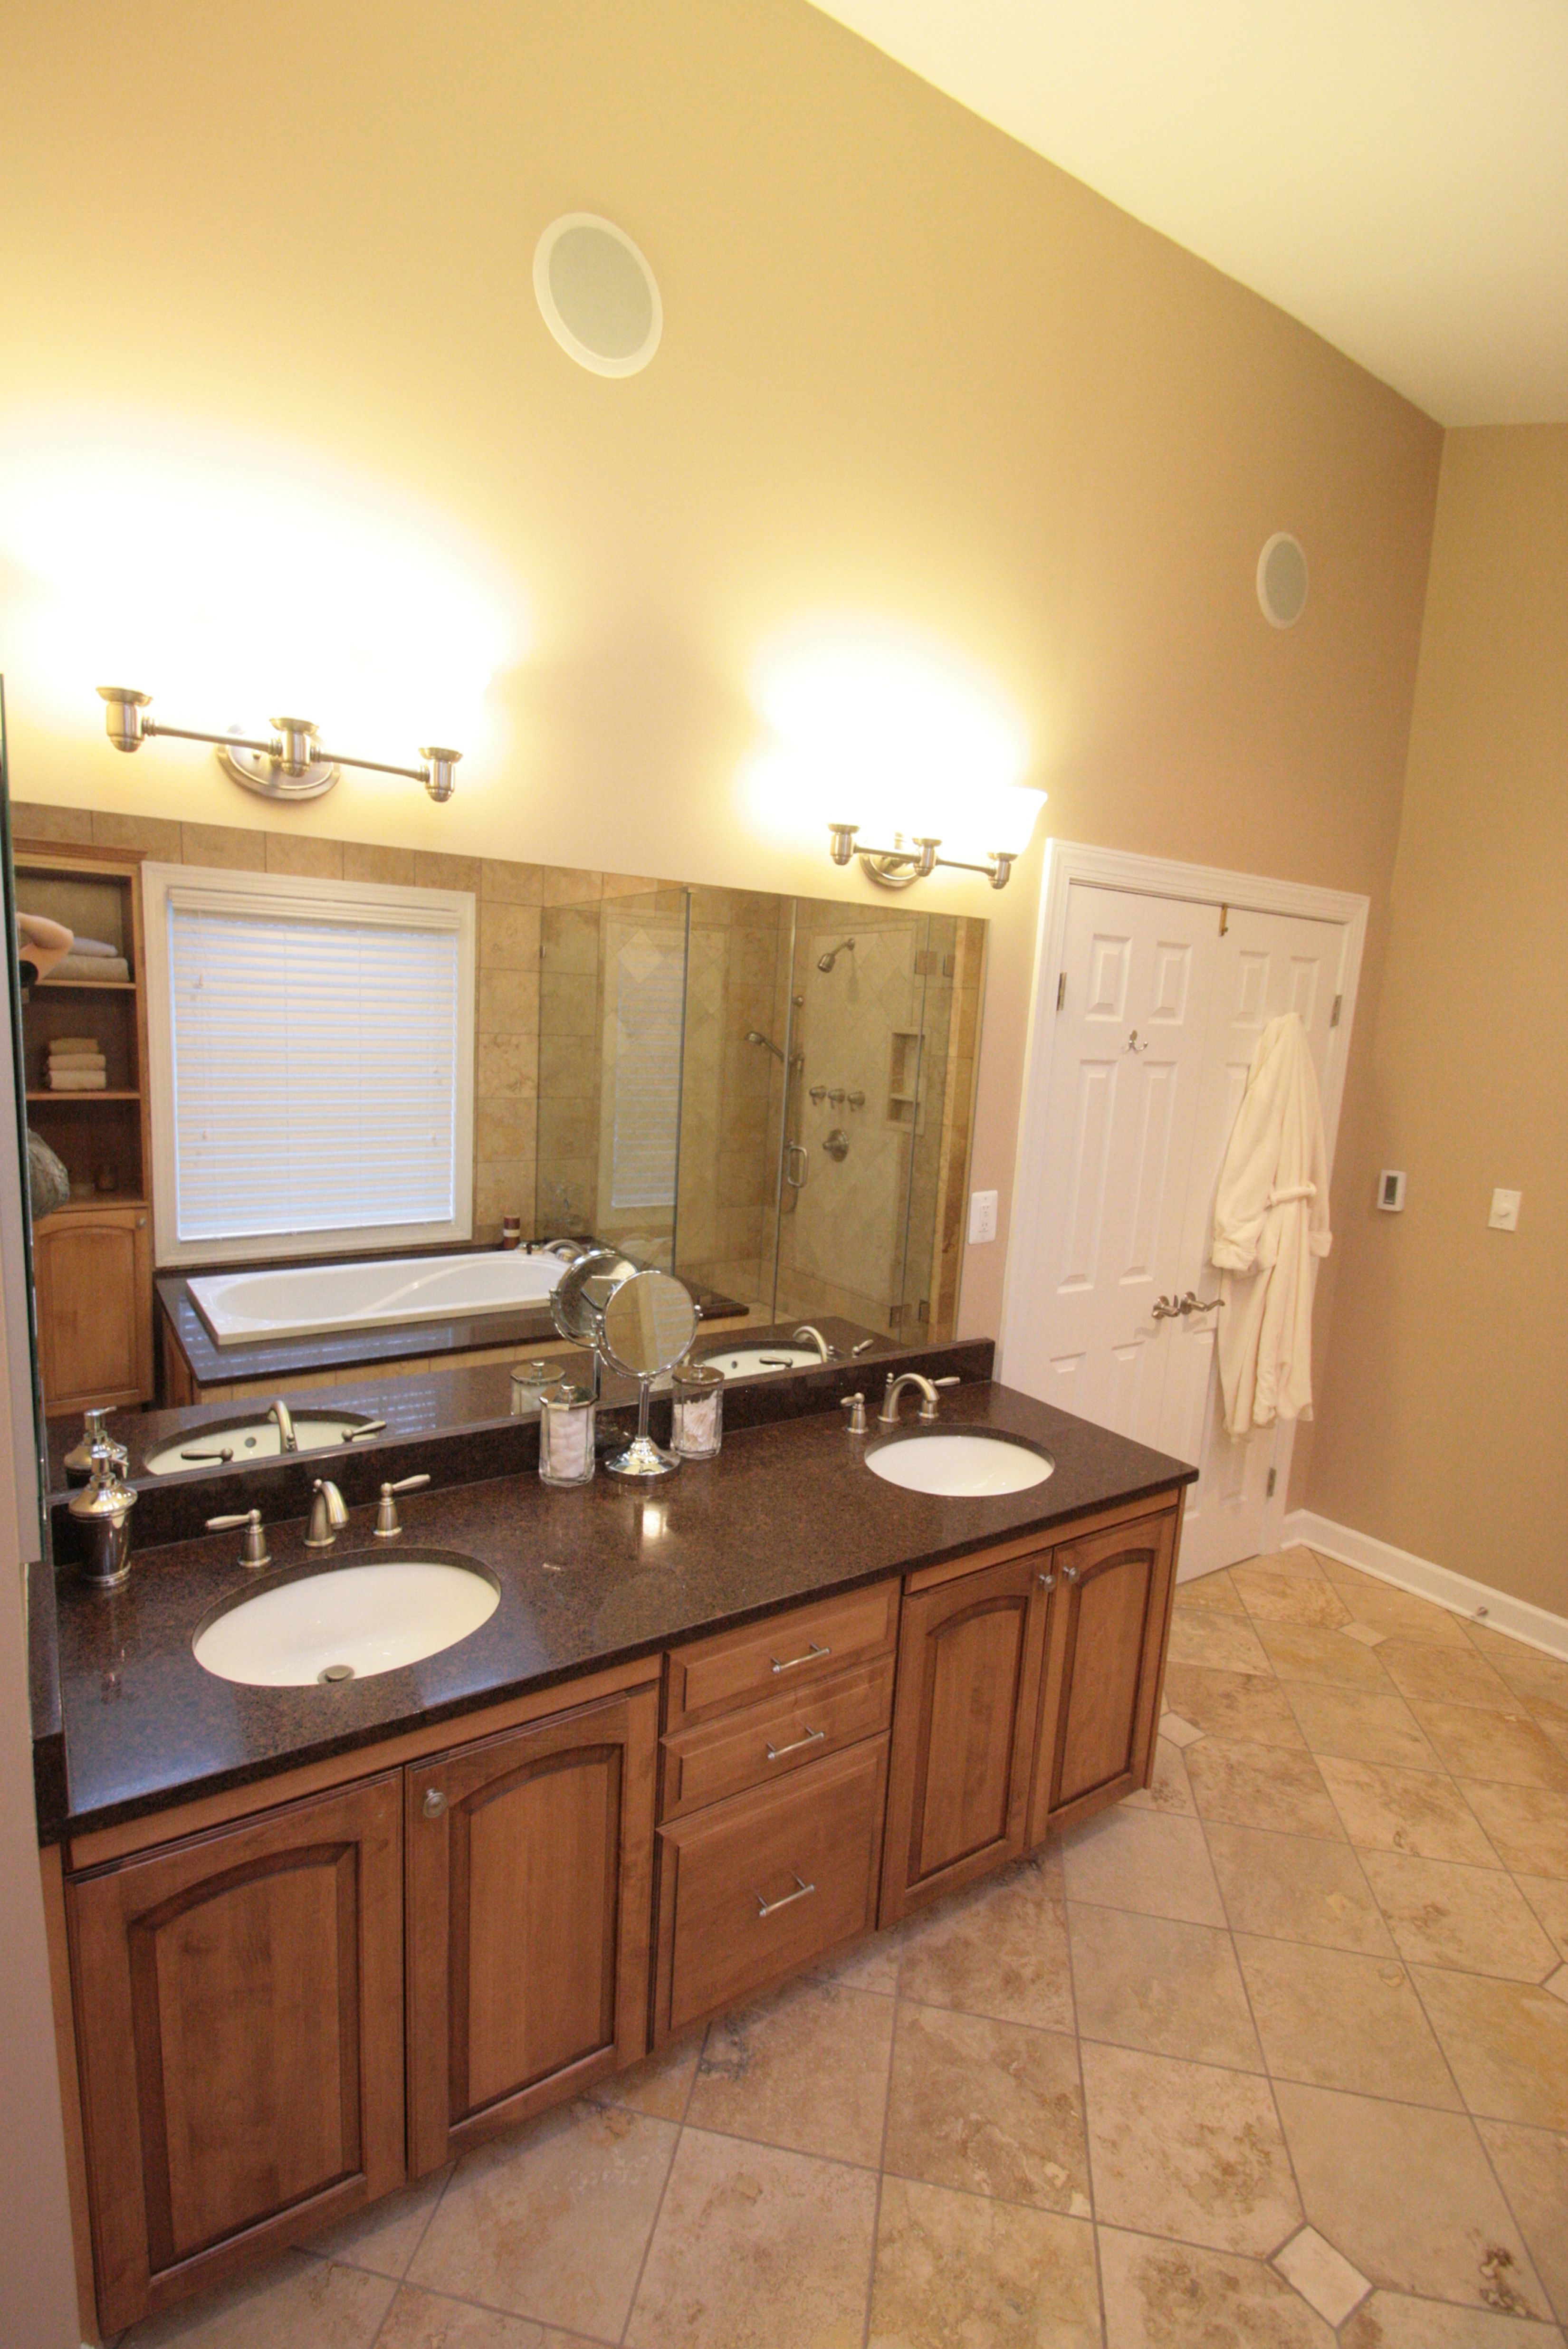 Bathroom Remodel | Remodeling mobile homes, Bathrooms ...